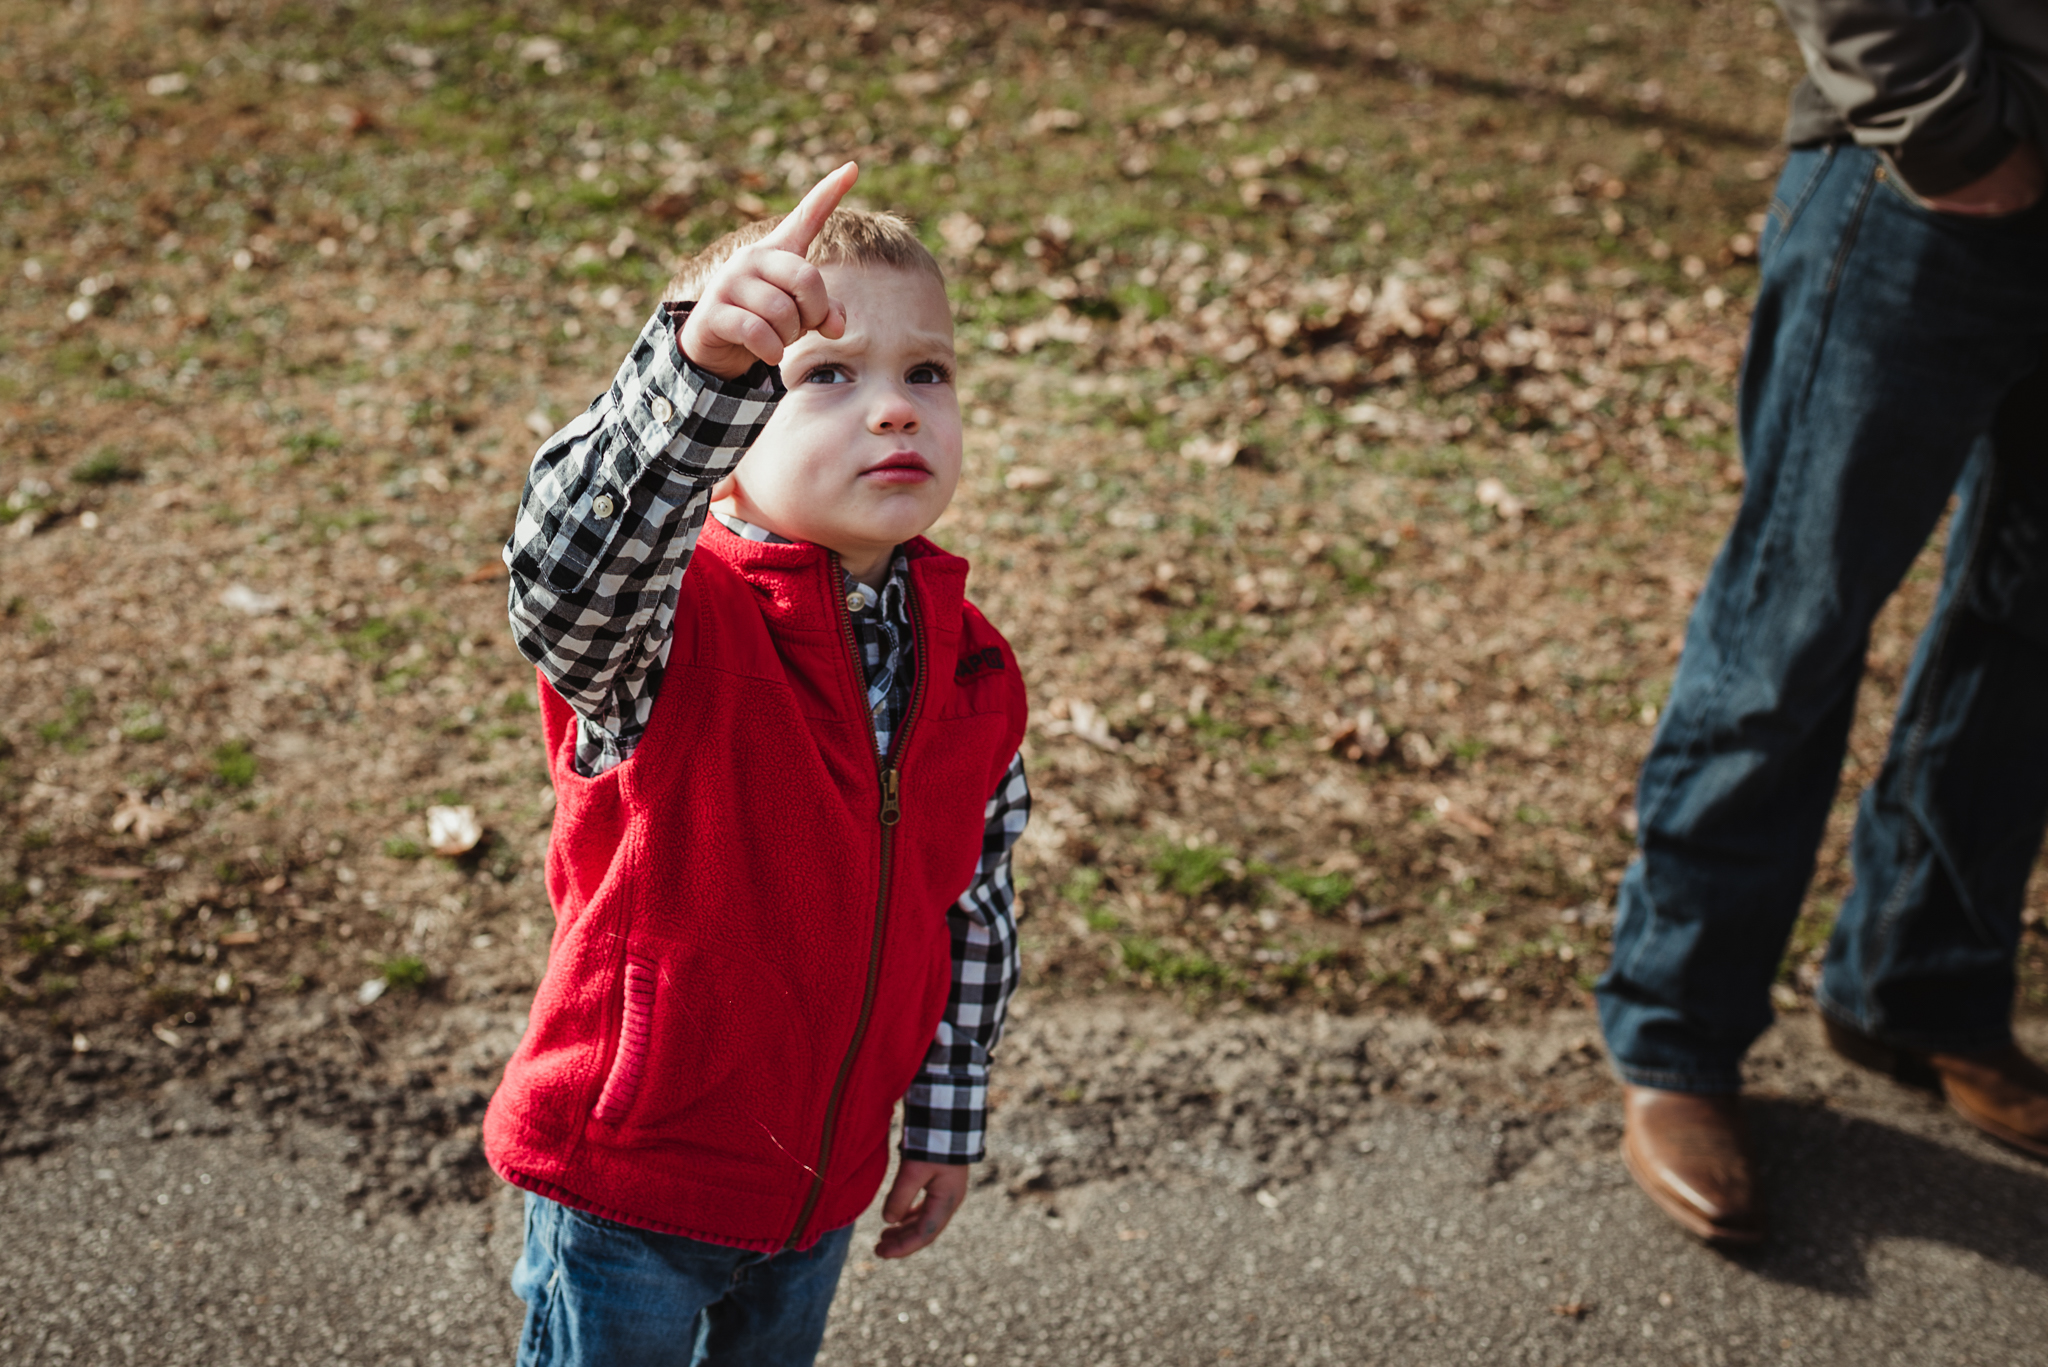 The three year old boy points to the sky during his family photo session in Raleigh, North Carolina.